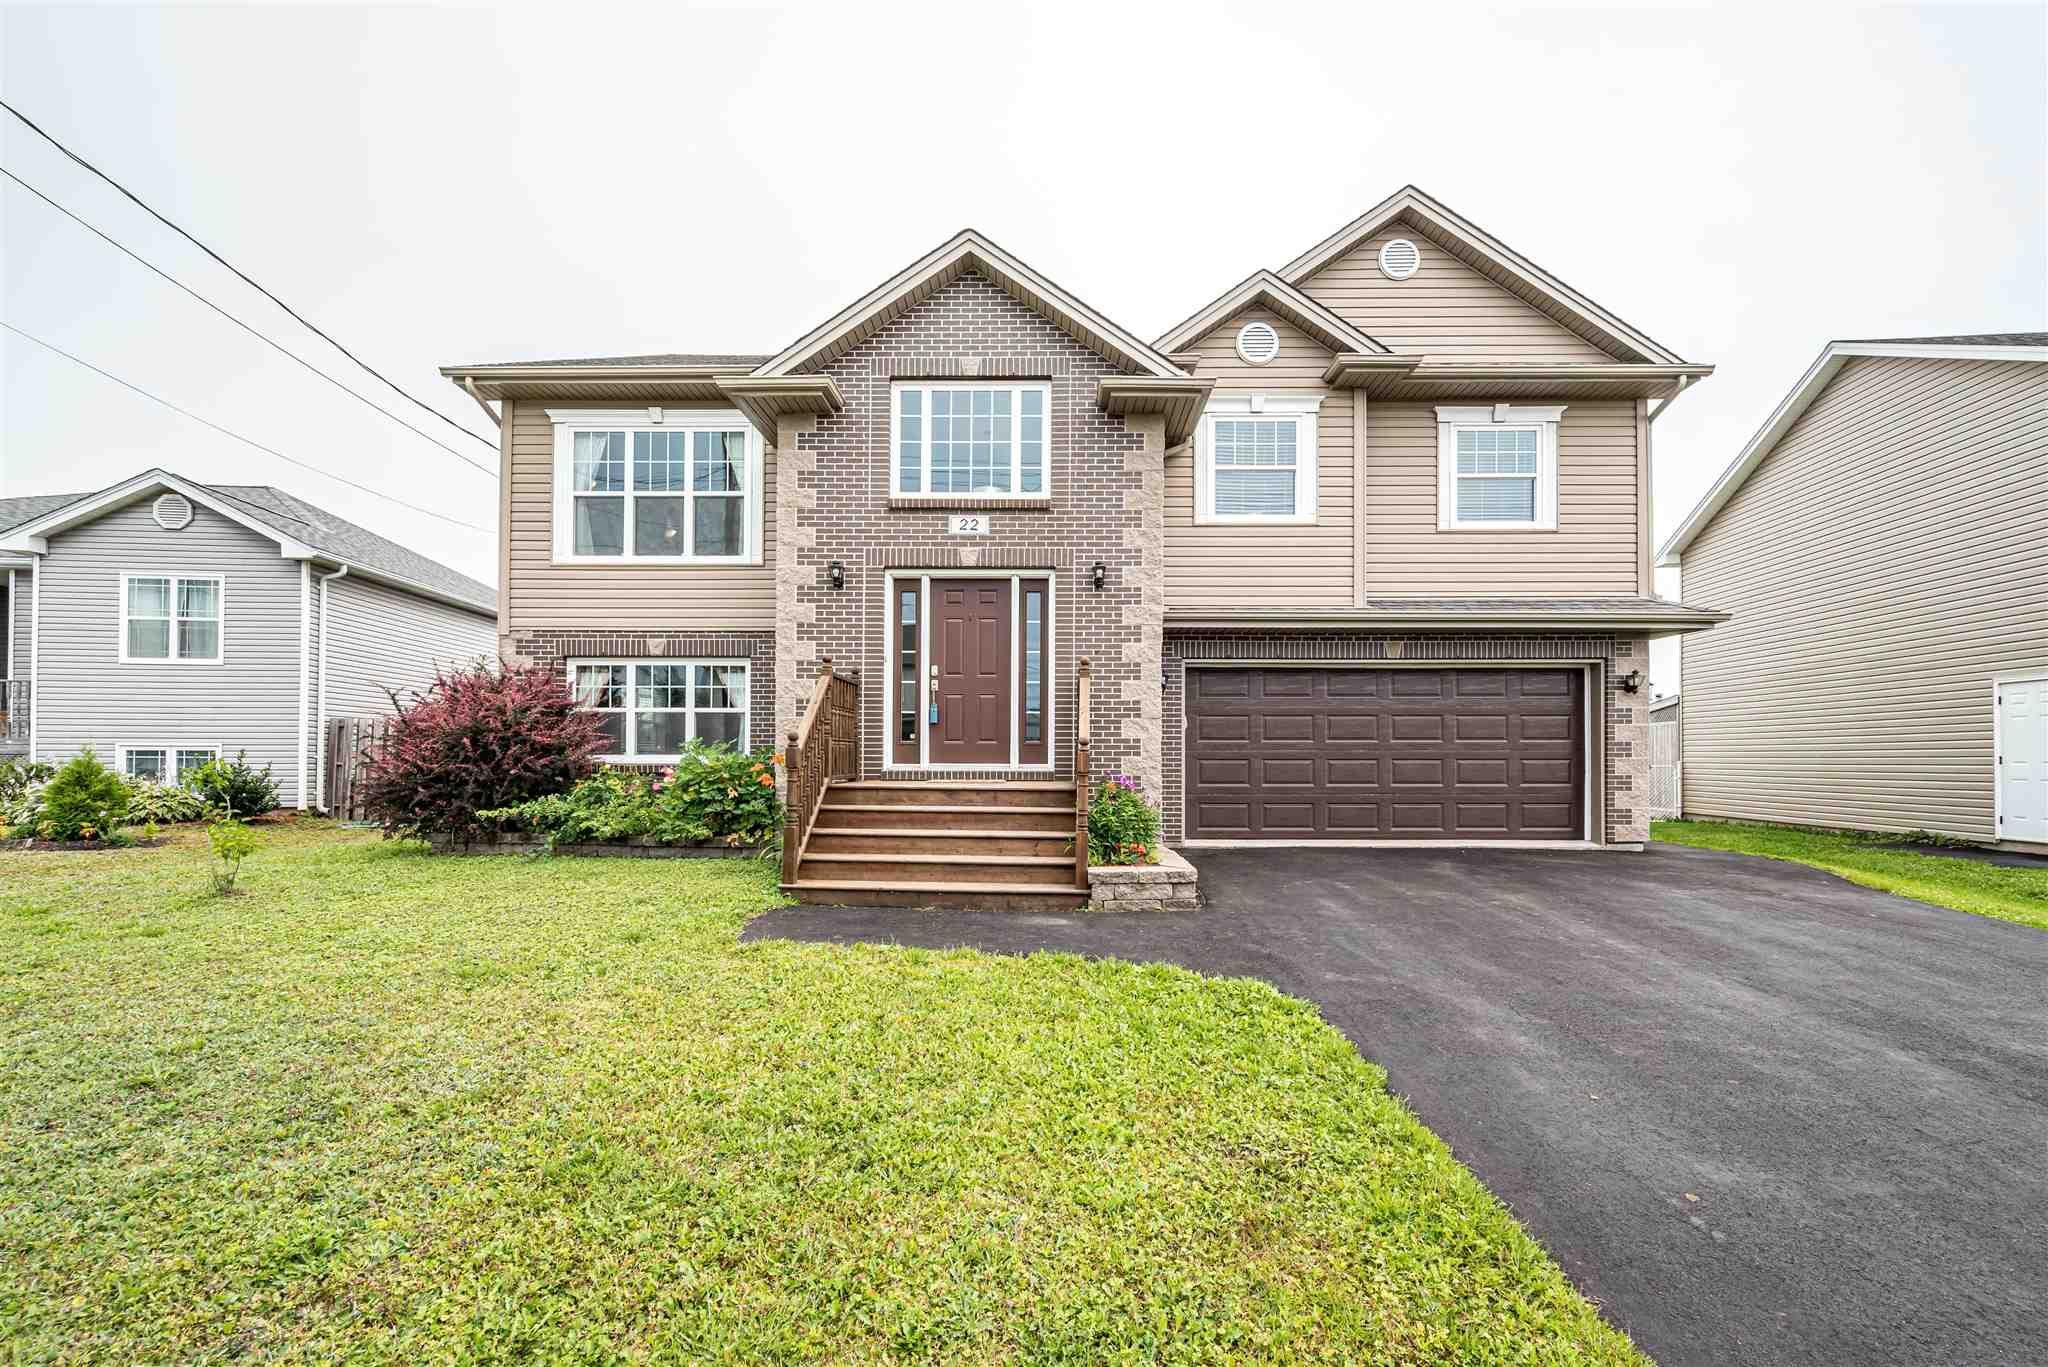 Main Photo: 22 Ridding Road in Eastern Passage: 11-Dartmouth Woodside, Eastern Passage, Cow Bay Residential for sale (Halifax-Dartmouth)  : MLS®# 202119583